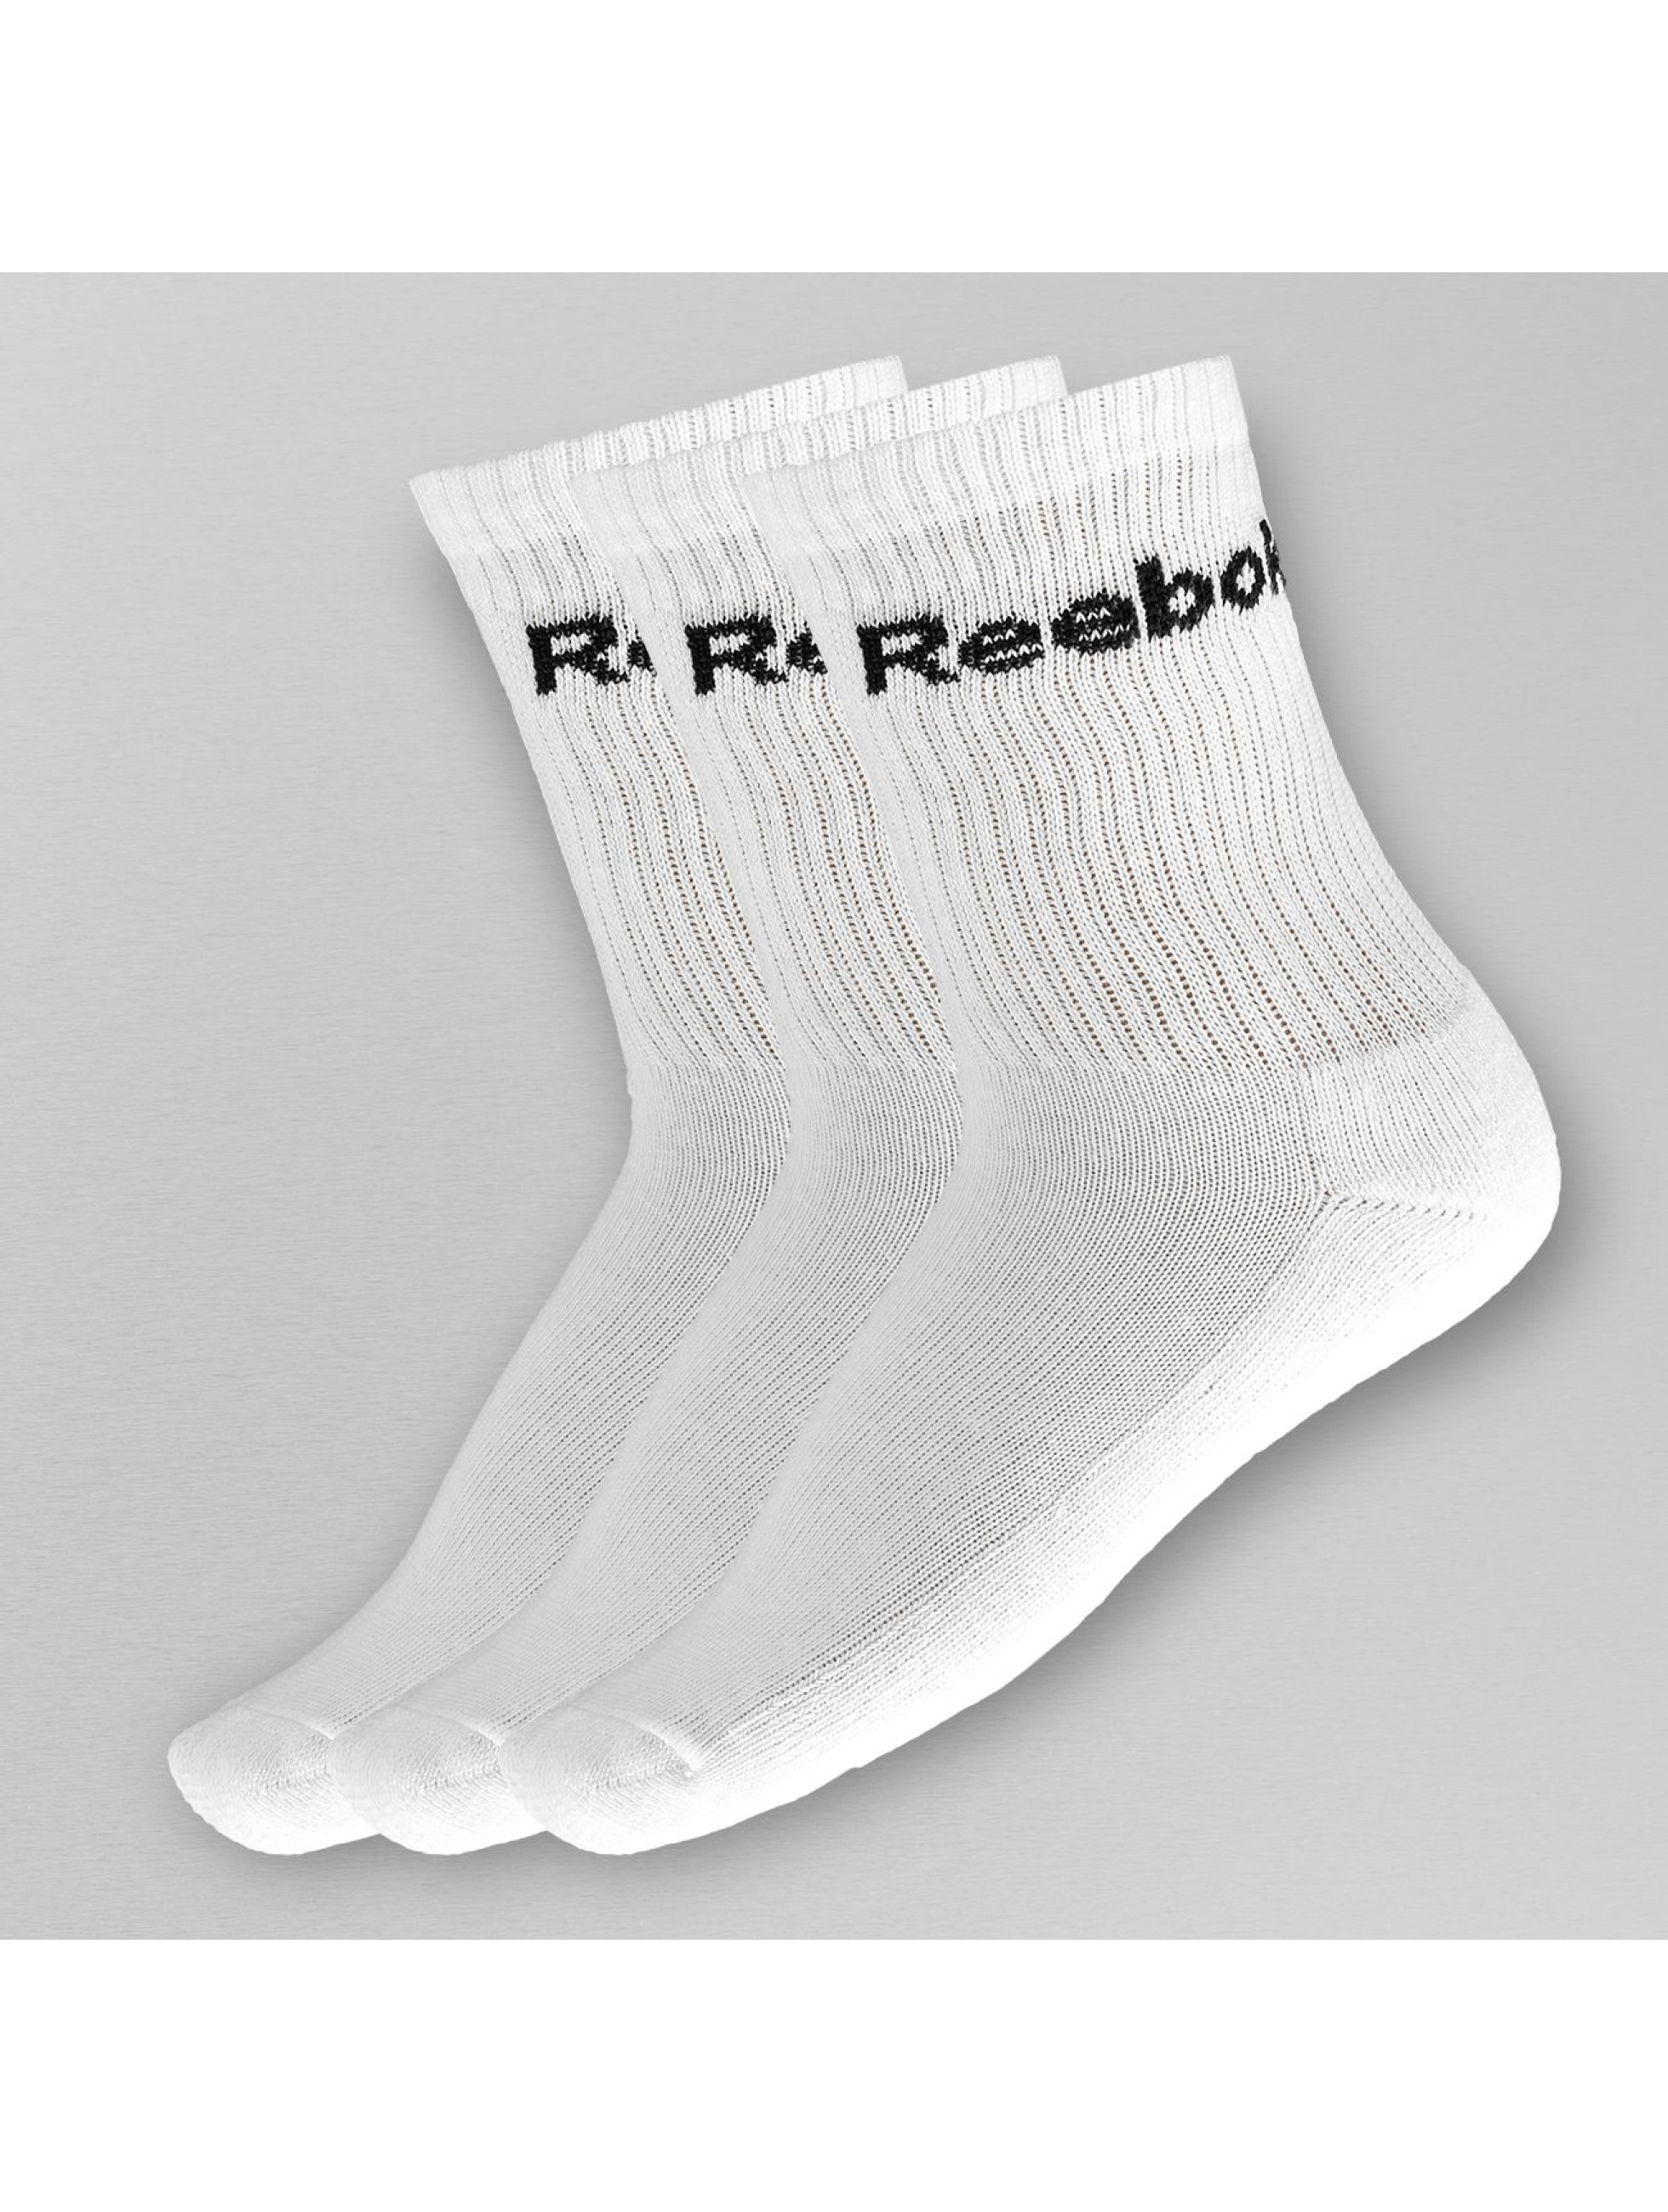 Reebok Chaussettes 3 for 2 Crew blanc